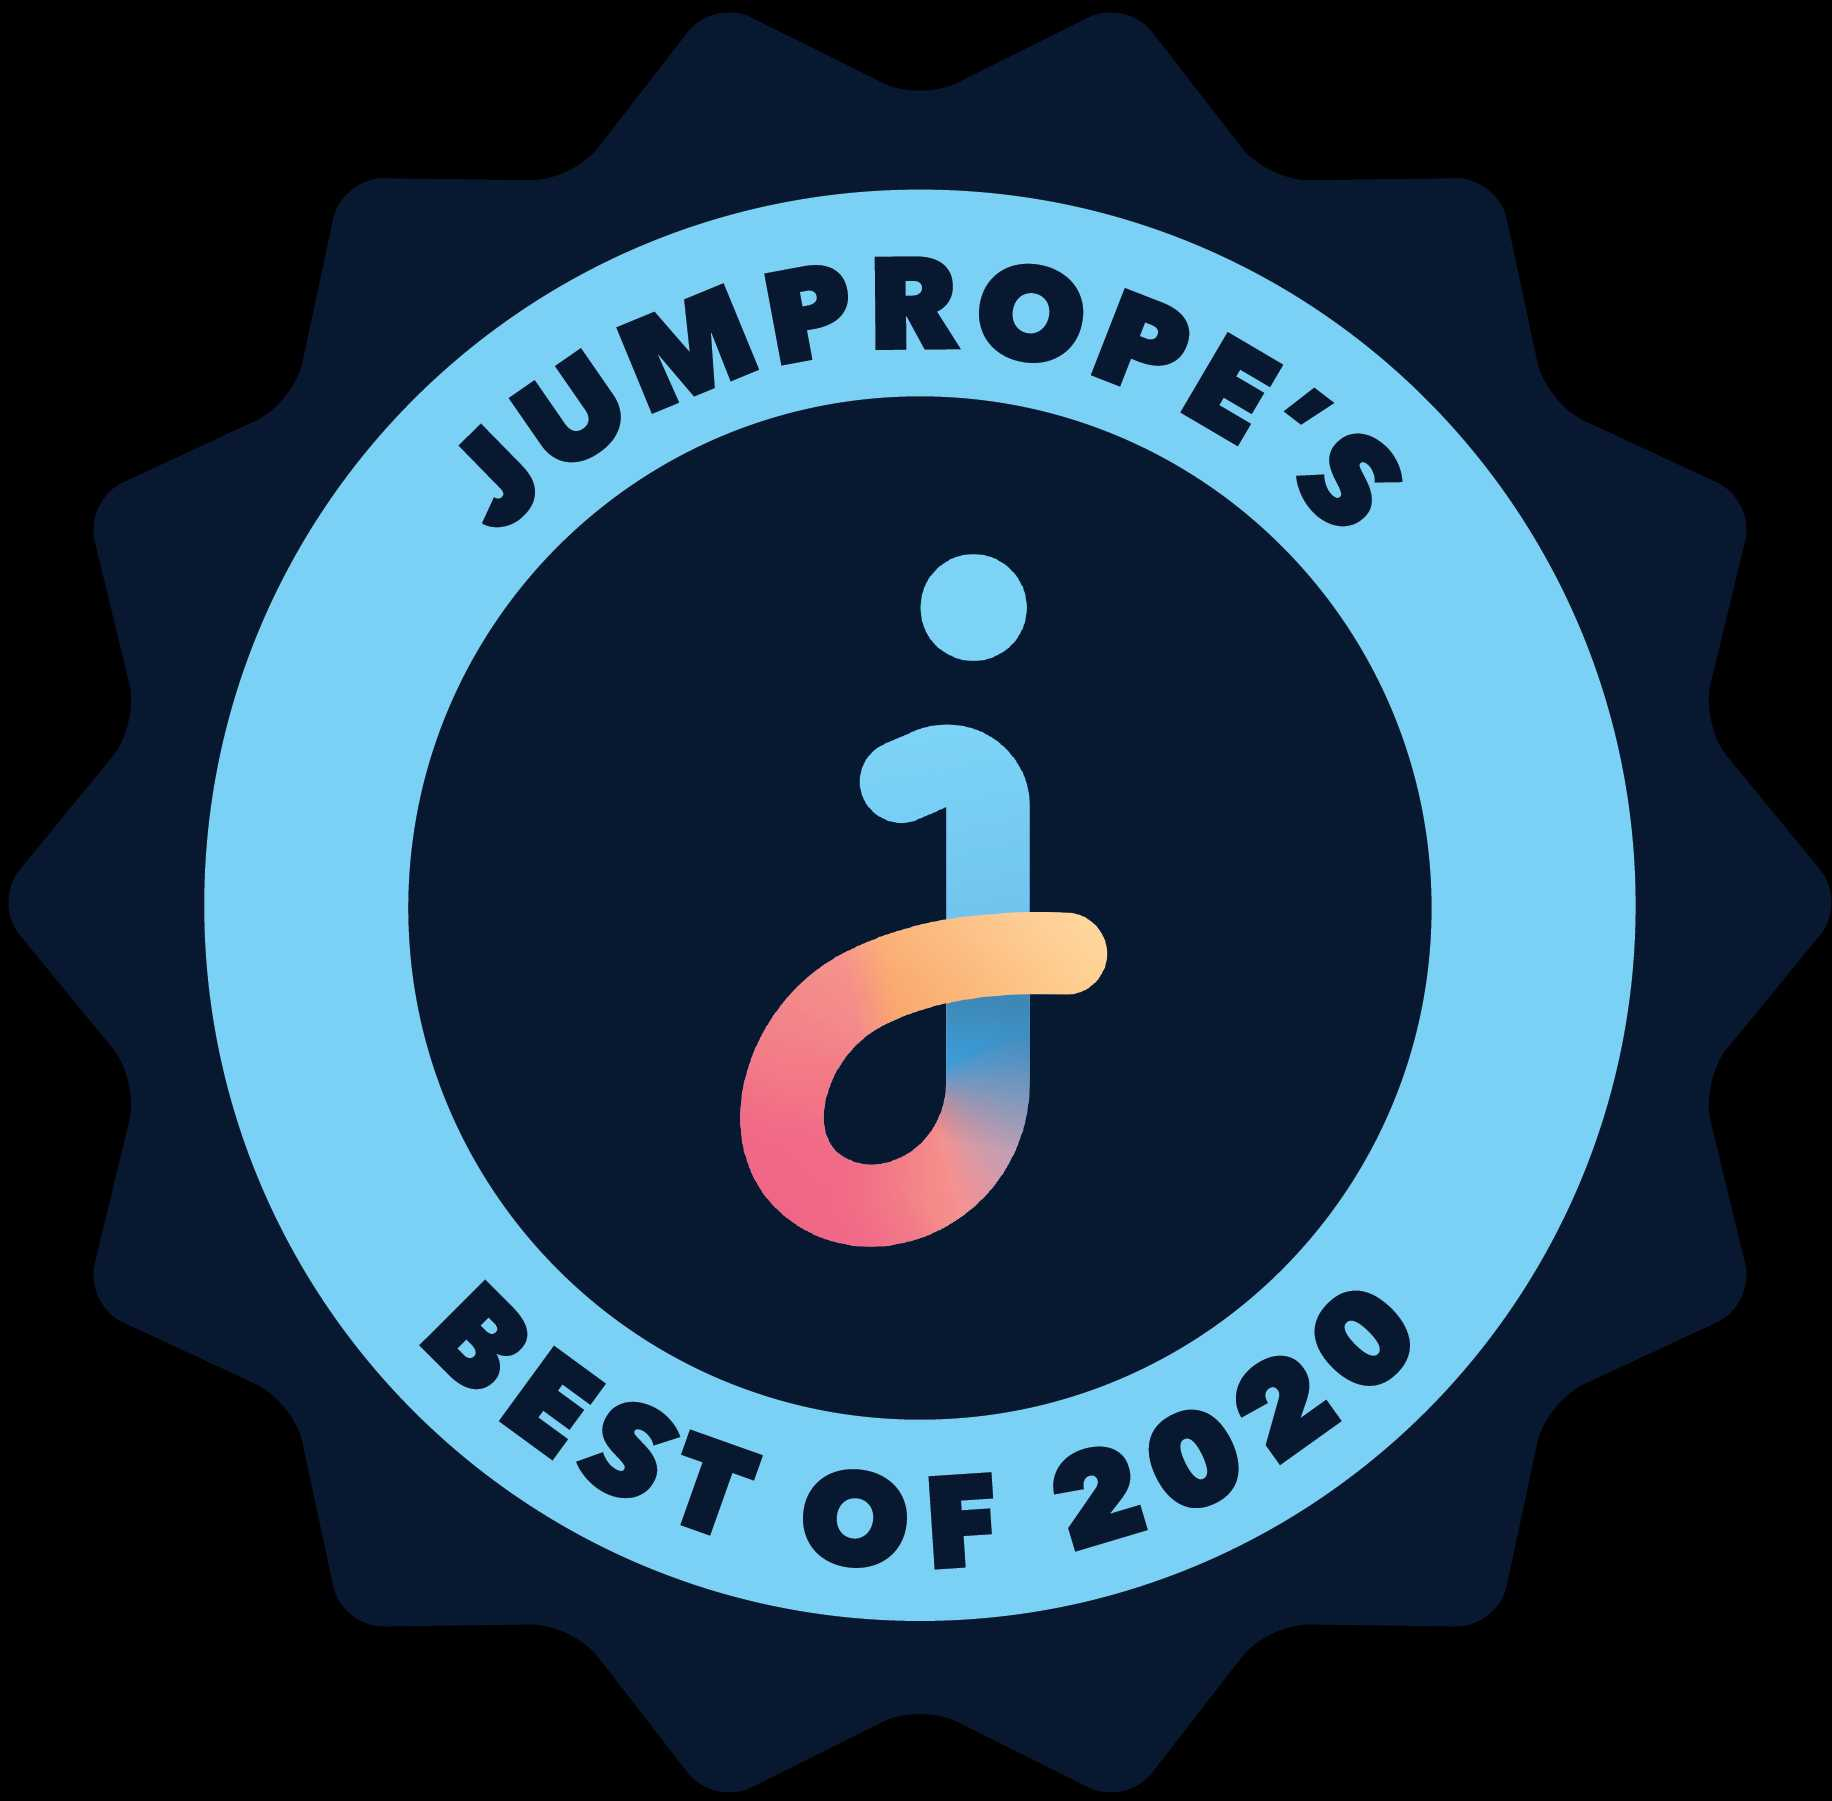 JumpRope Best of 2020